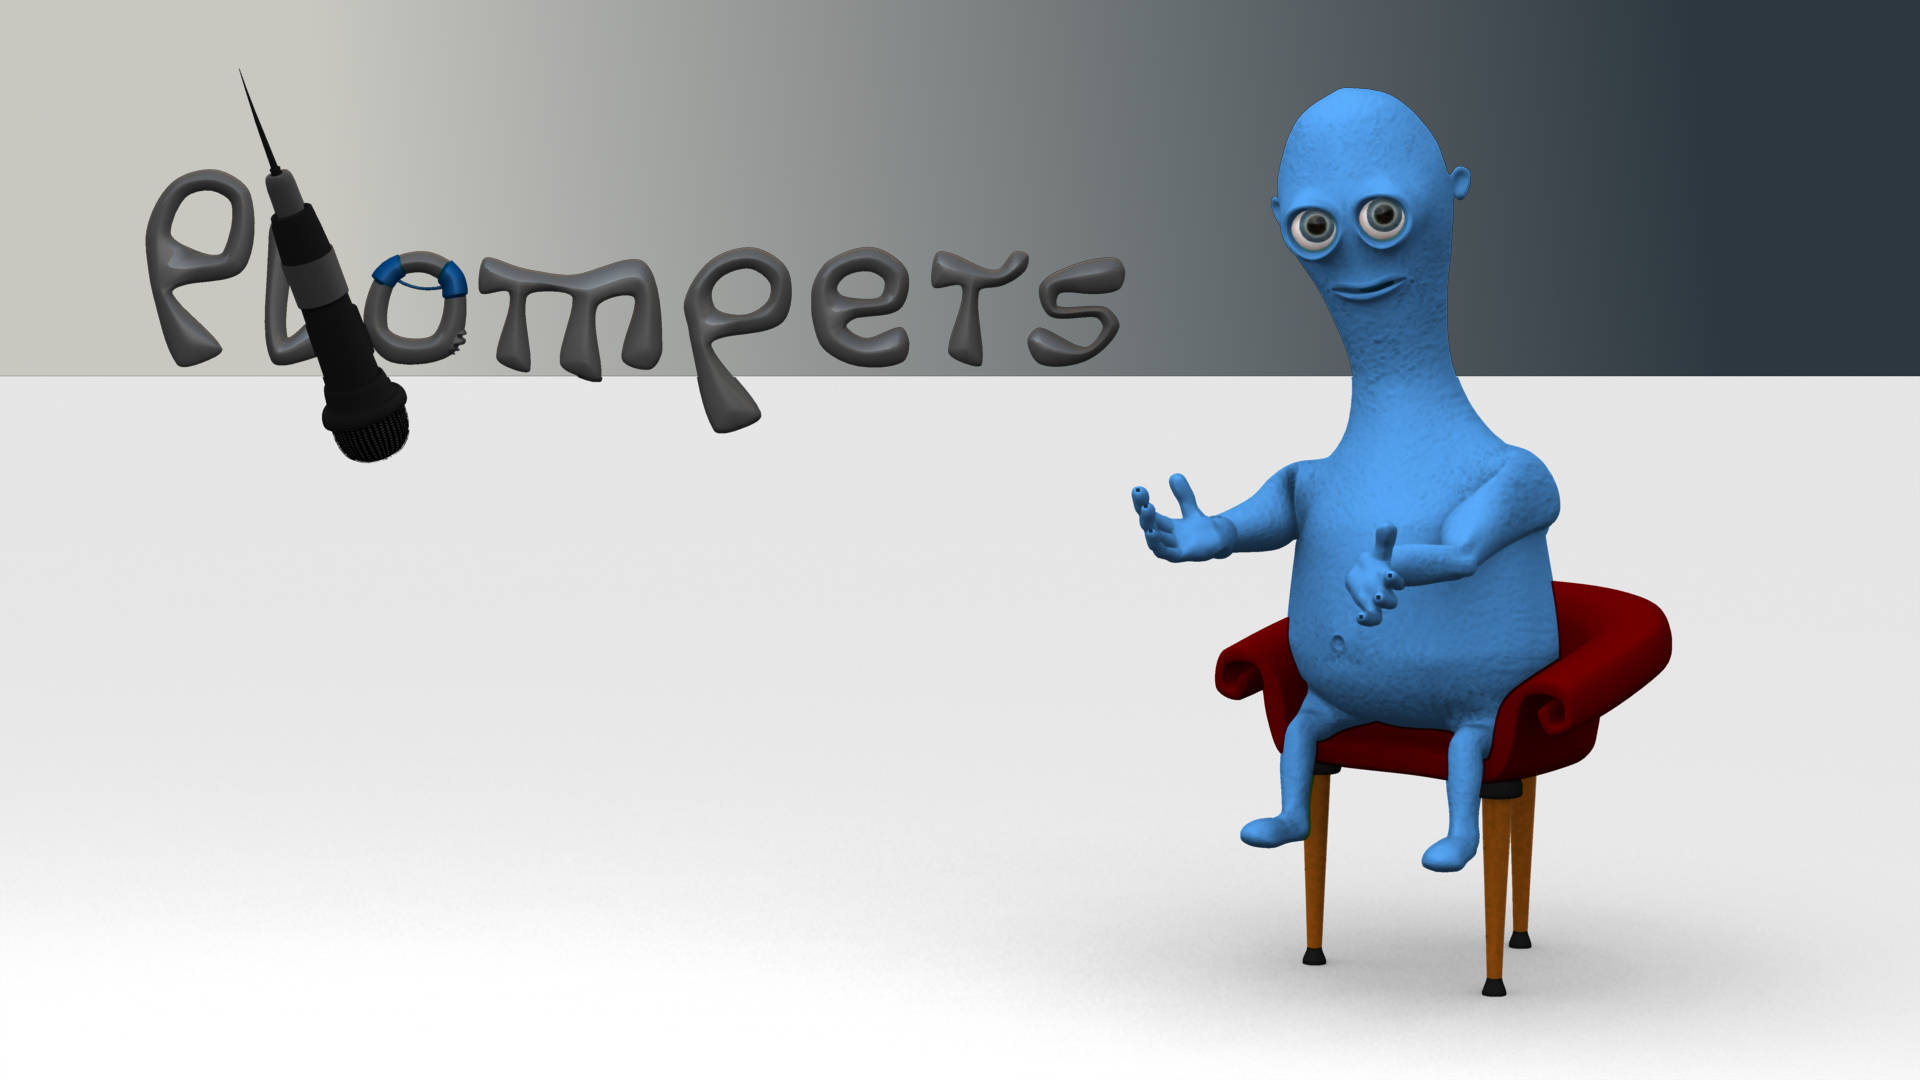 Animation:Master Plompers, kleines blaues Monster